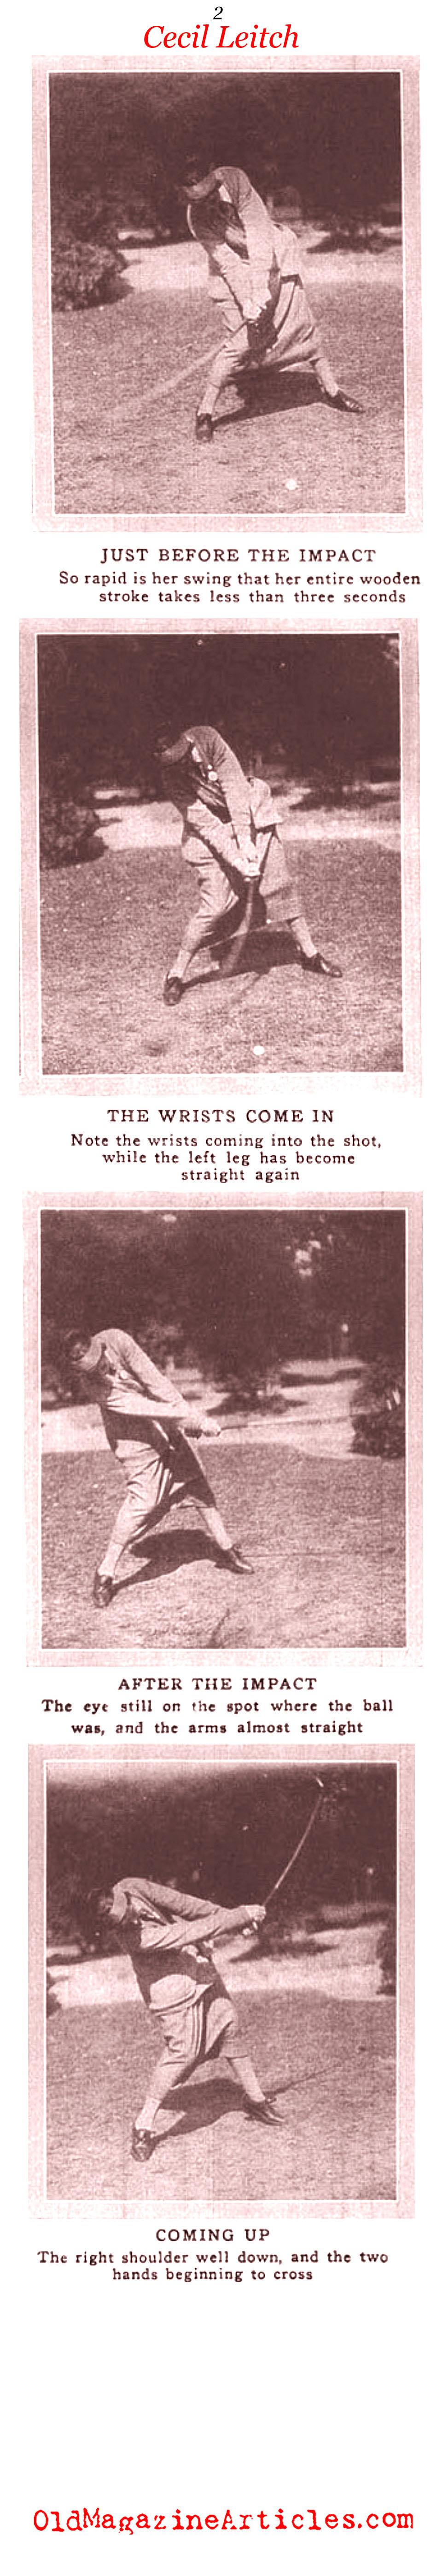 The Swing of Cecil Leitch (Vanity Fair Magazine, 1921)